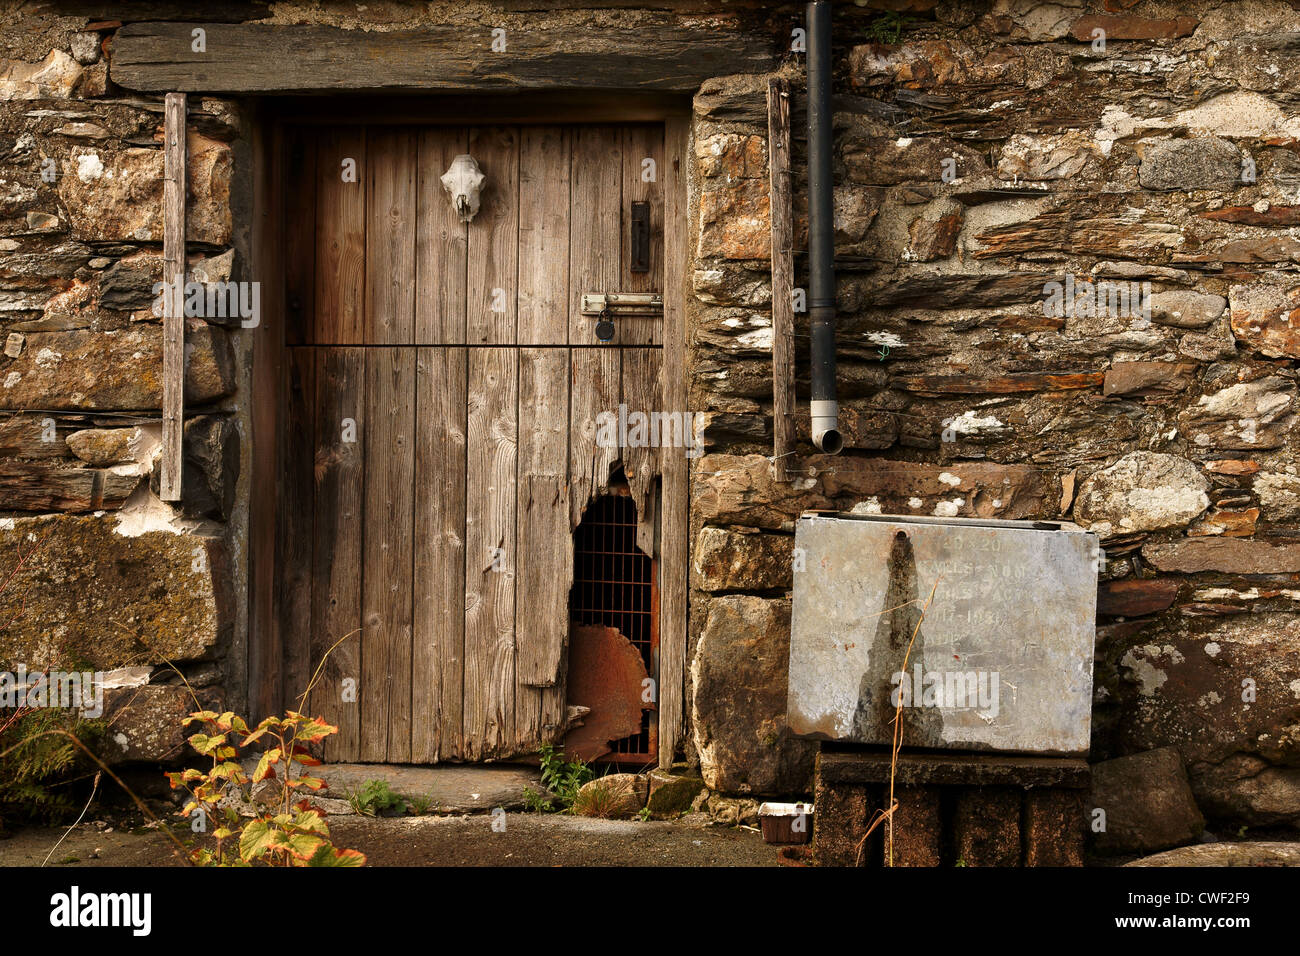 Ordinaire Old Barn Door On An Farm Building Decorated With A Sheep Skull In Rural  North Wales